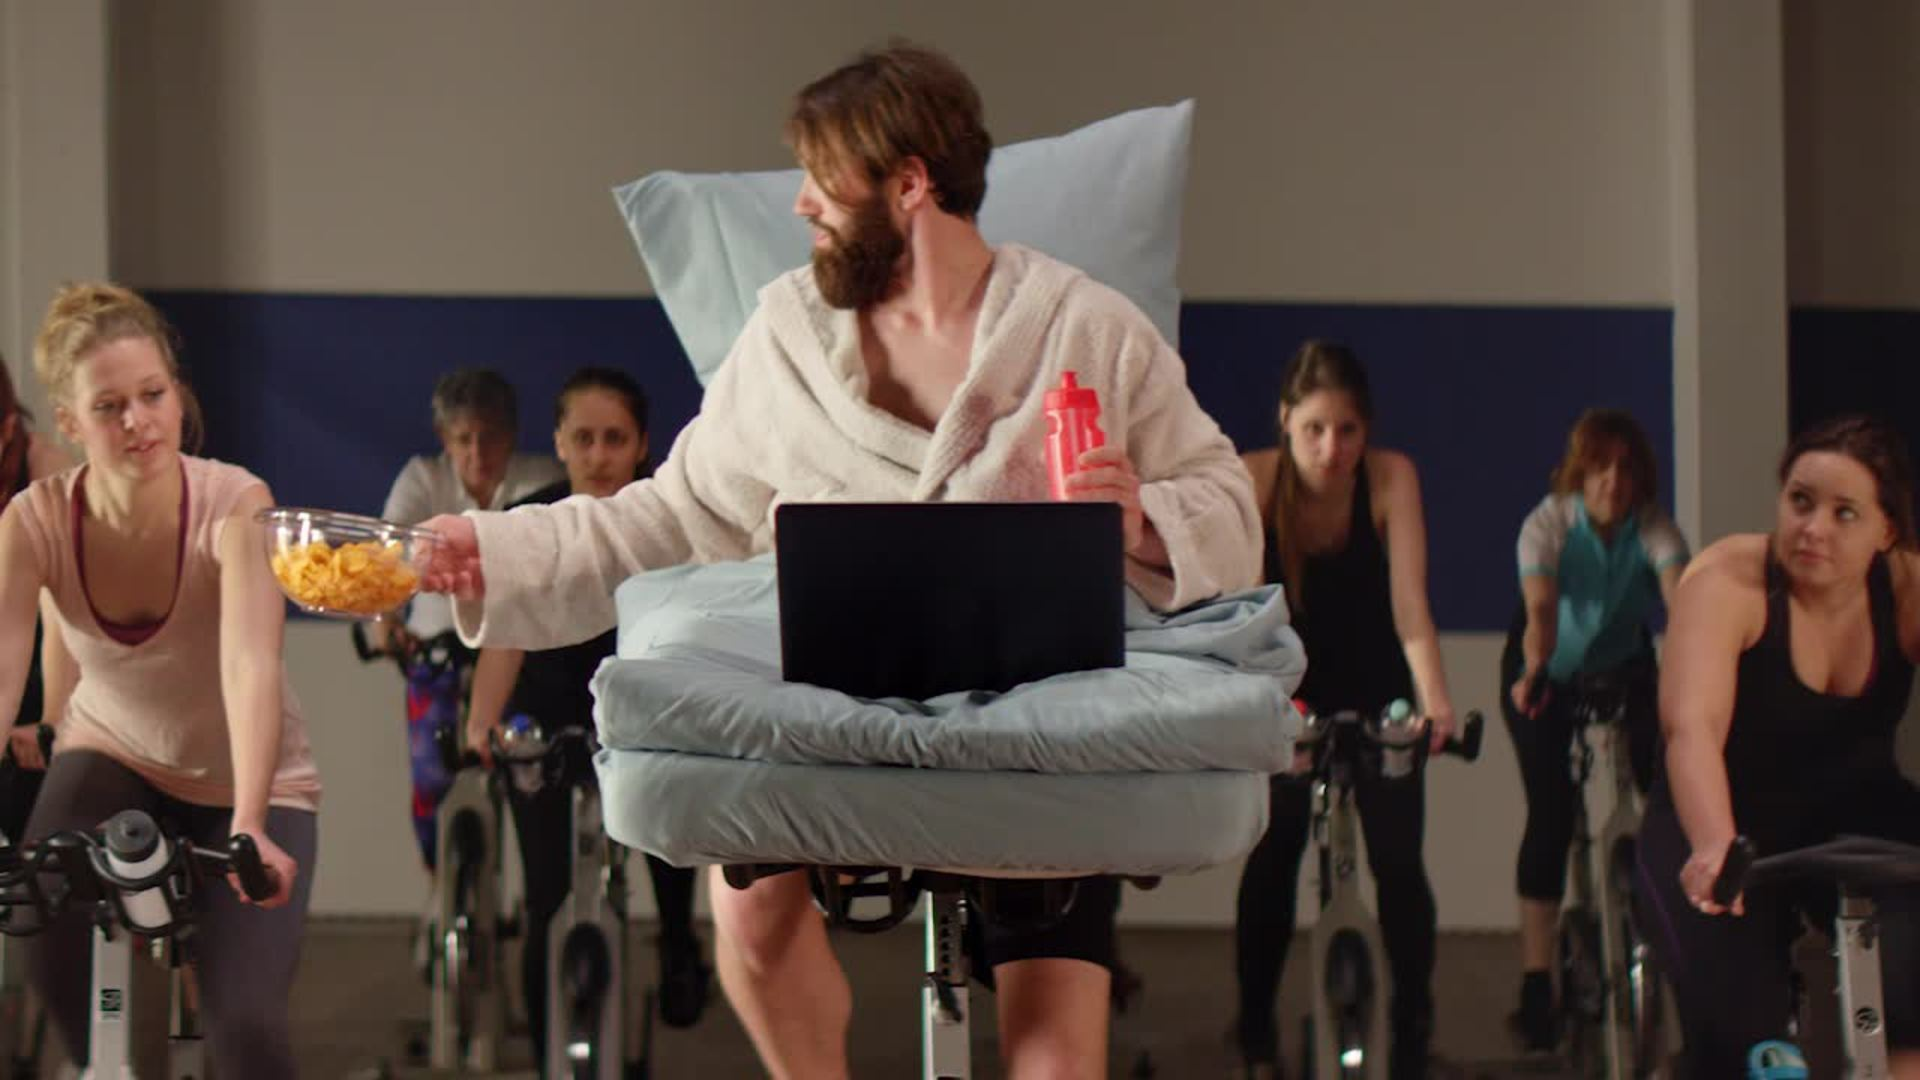 Audi A6 film contest: Relaxed Fitness